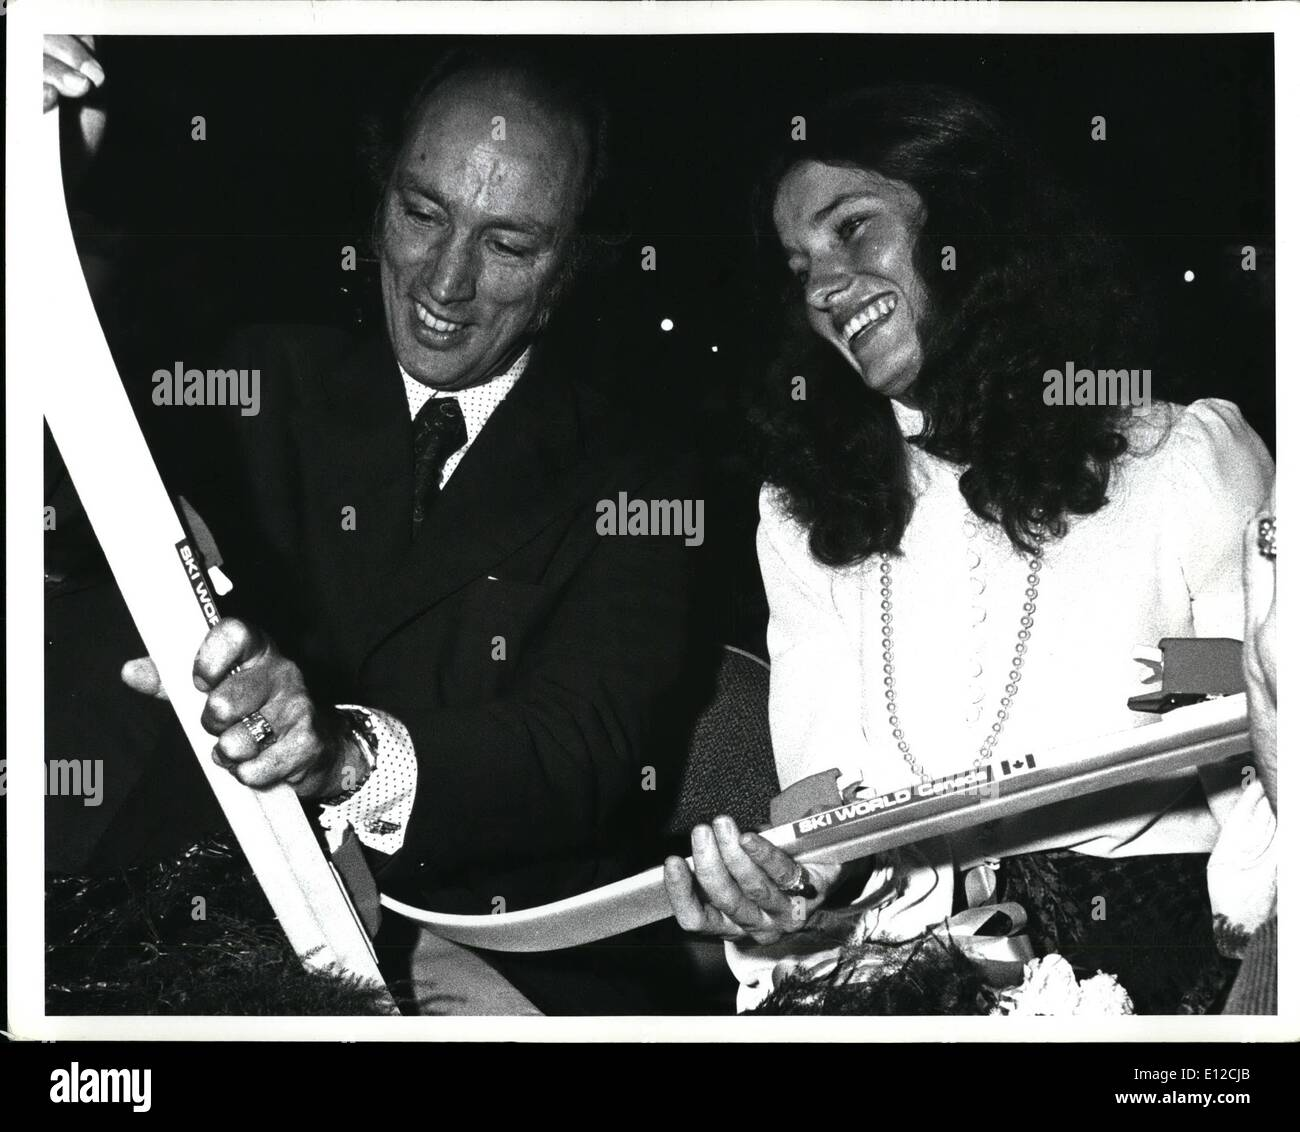 Dec. 12, 2011 - Enclosed is a photograph of Prime Minister Pierre Trudeau and his wife, Margaret, taken September 23, 1972 in Vancouver. They are holdings a pair of skis for their son, Justin, presented at the mulch-culture evening of entertainment. - Stock Image